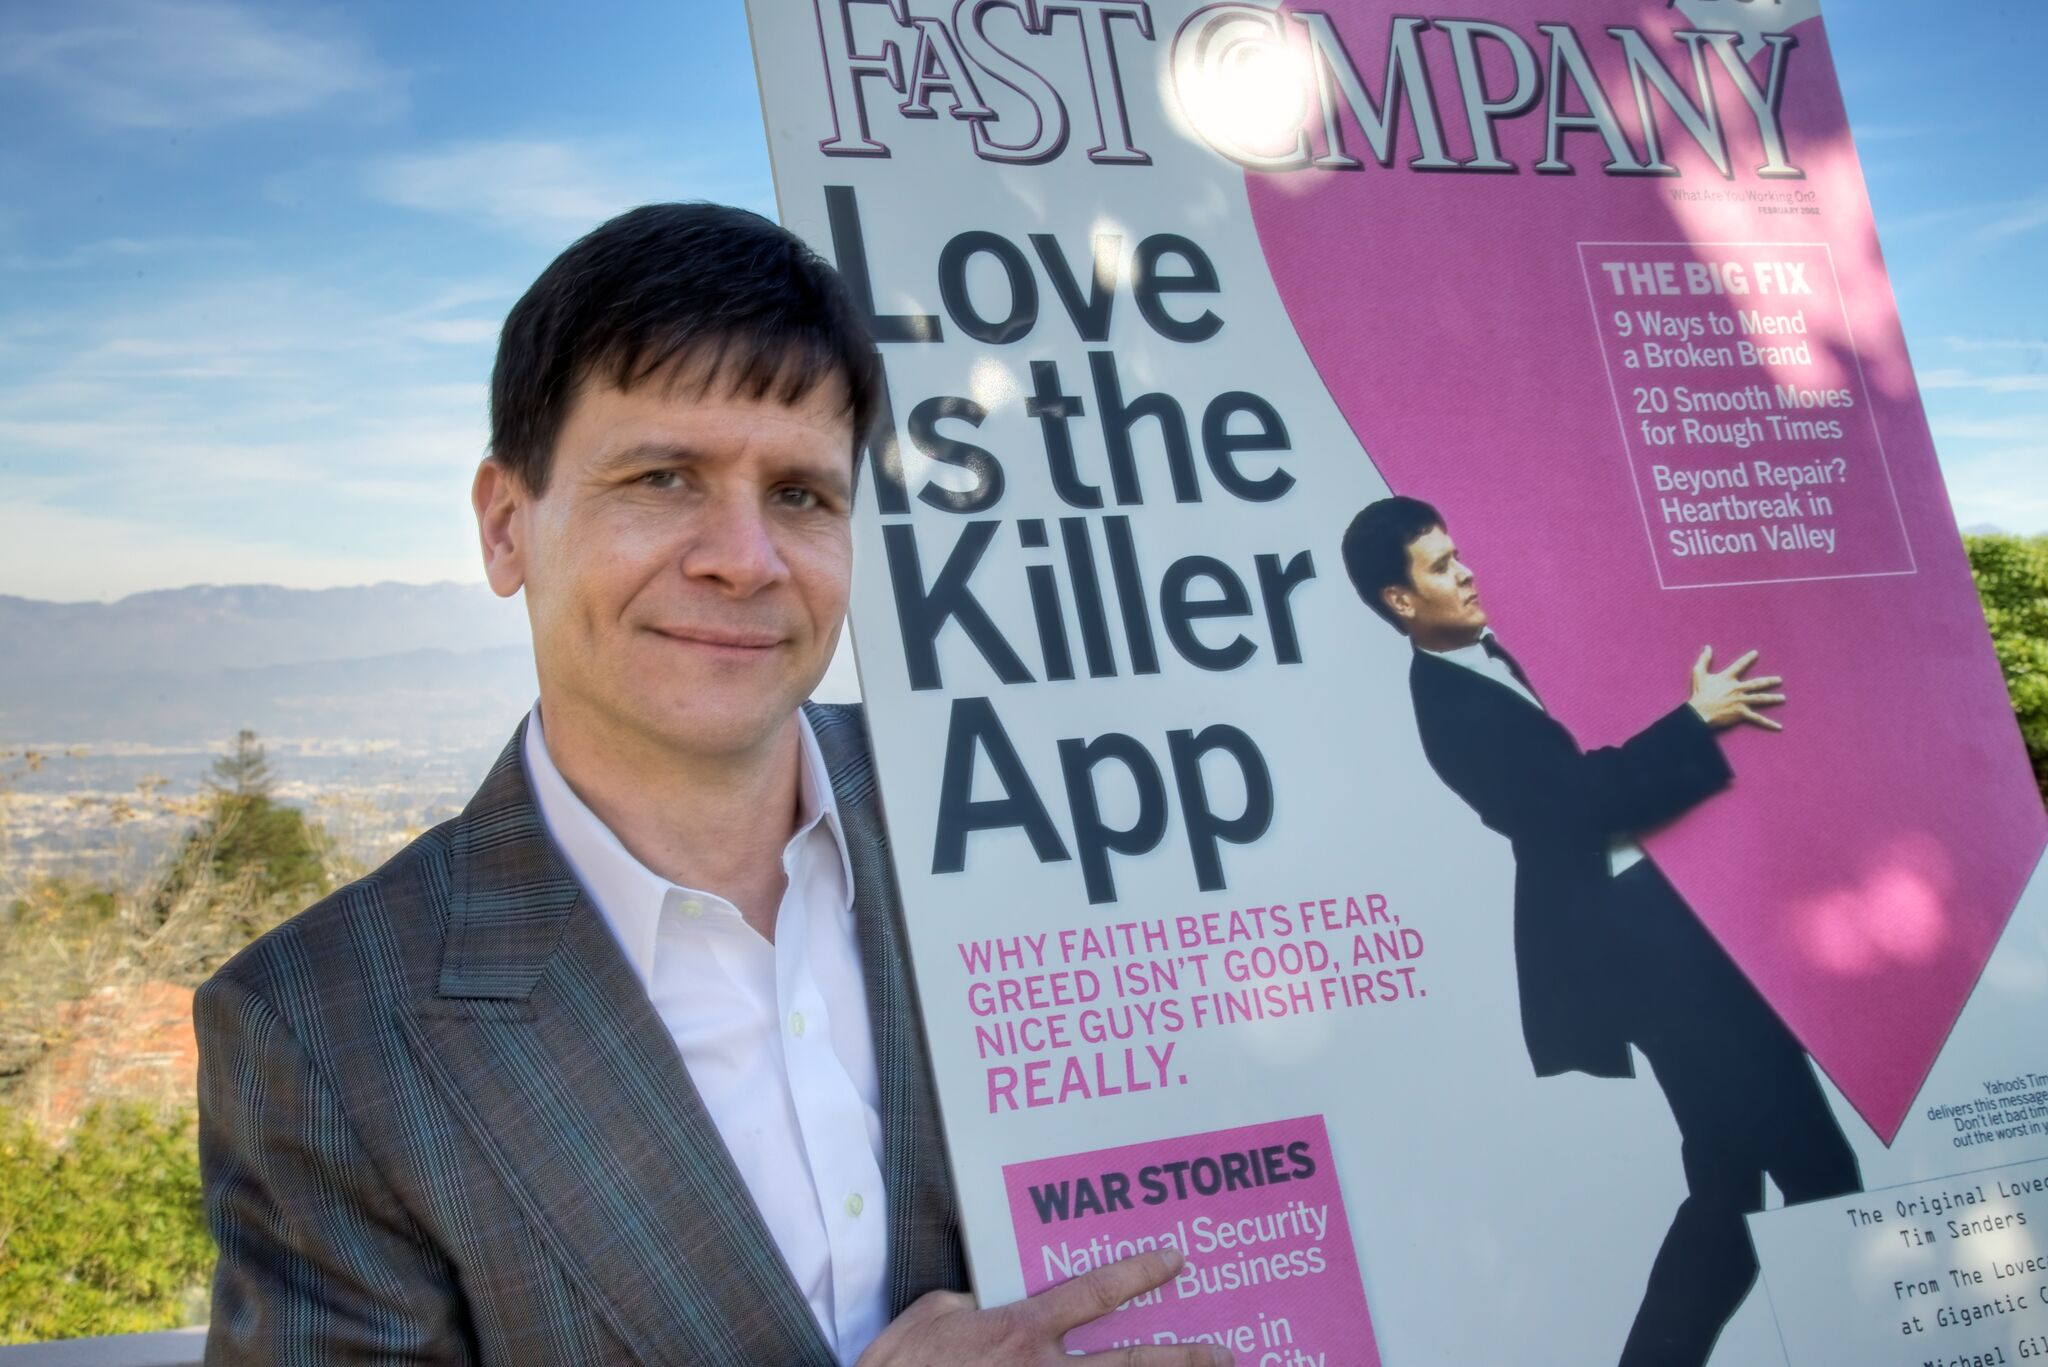 Afbeeldingsresultaat voor love is the killer app